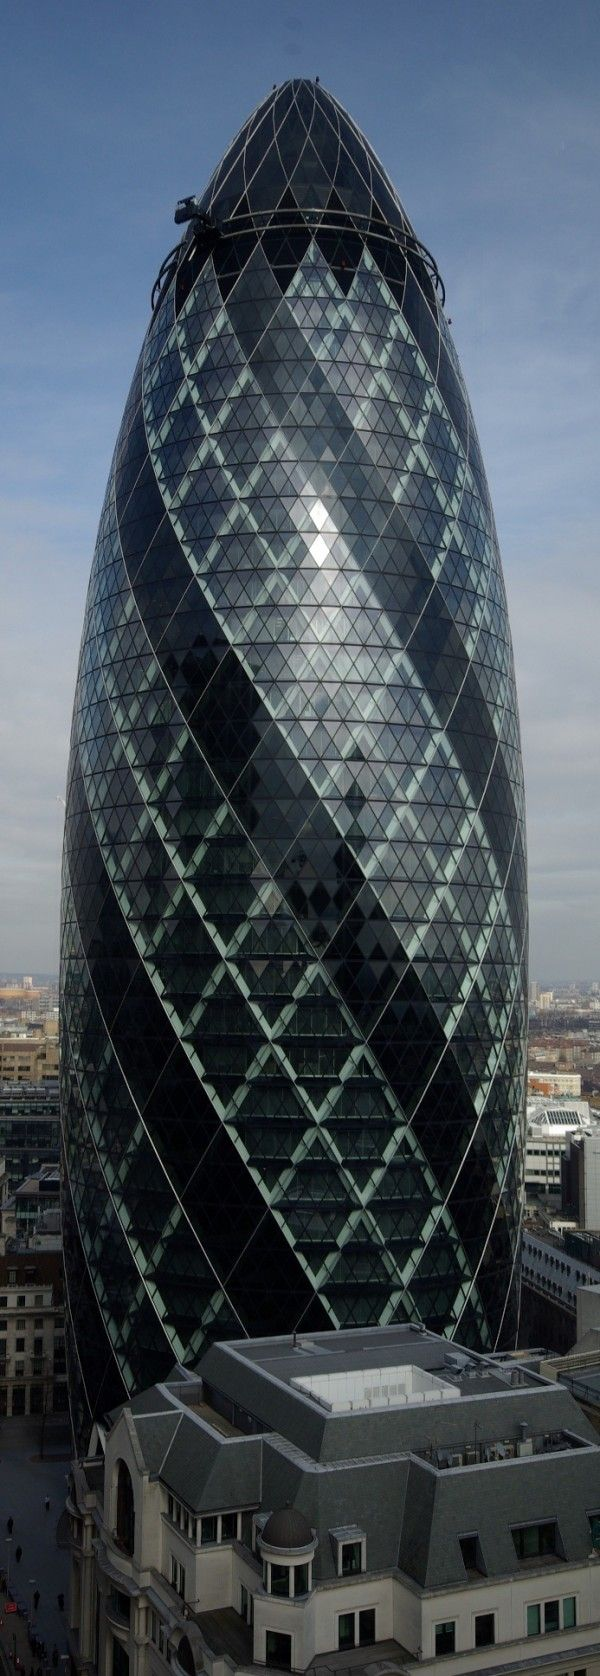 30 st mary axe the gherkin city of london this is my favorite building since i am in real estate in santa barbara ca